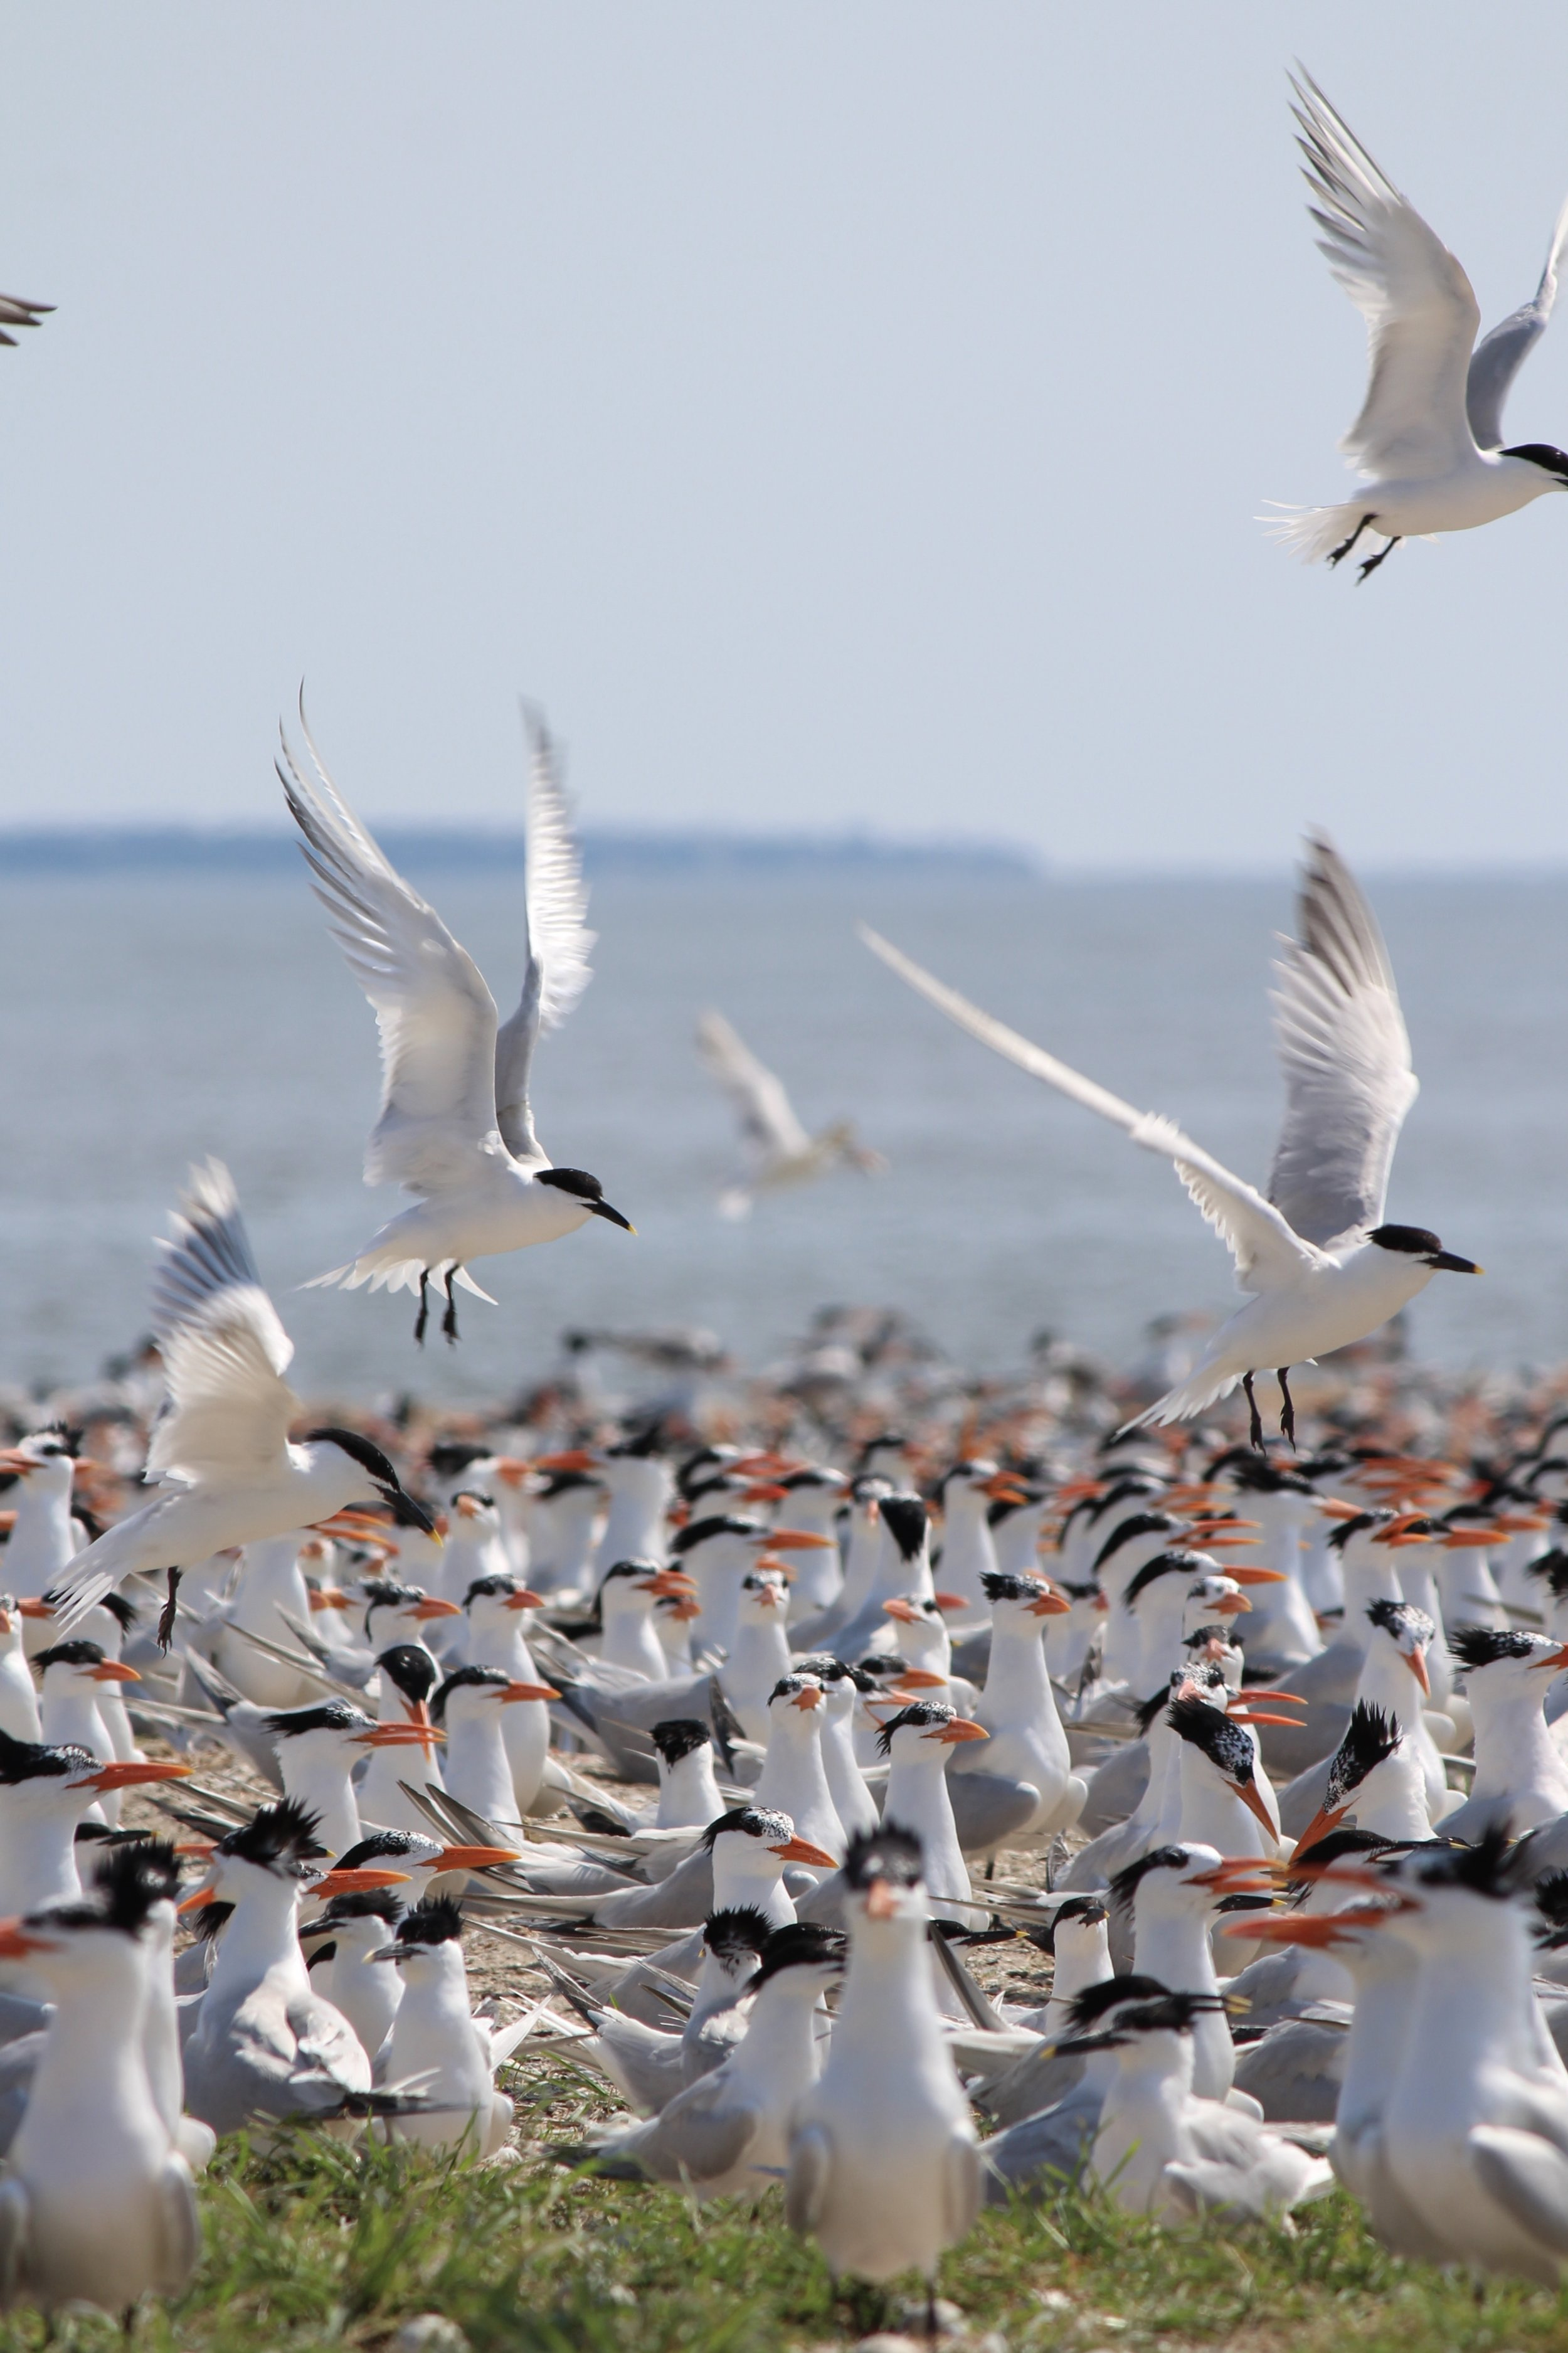 Terns eat schooling fish, diving dramatically from great heights into the water to catch their prey. (Photo: E. Weeks/SCDNR)